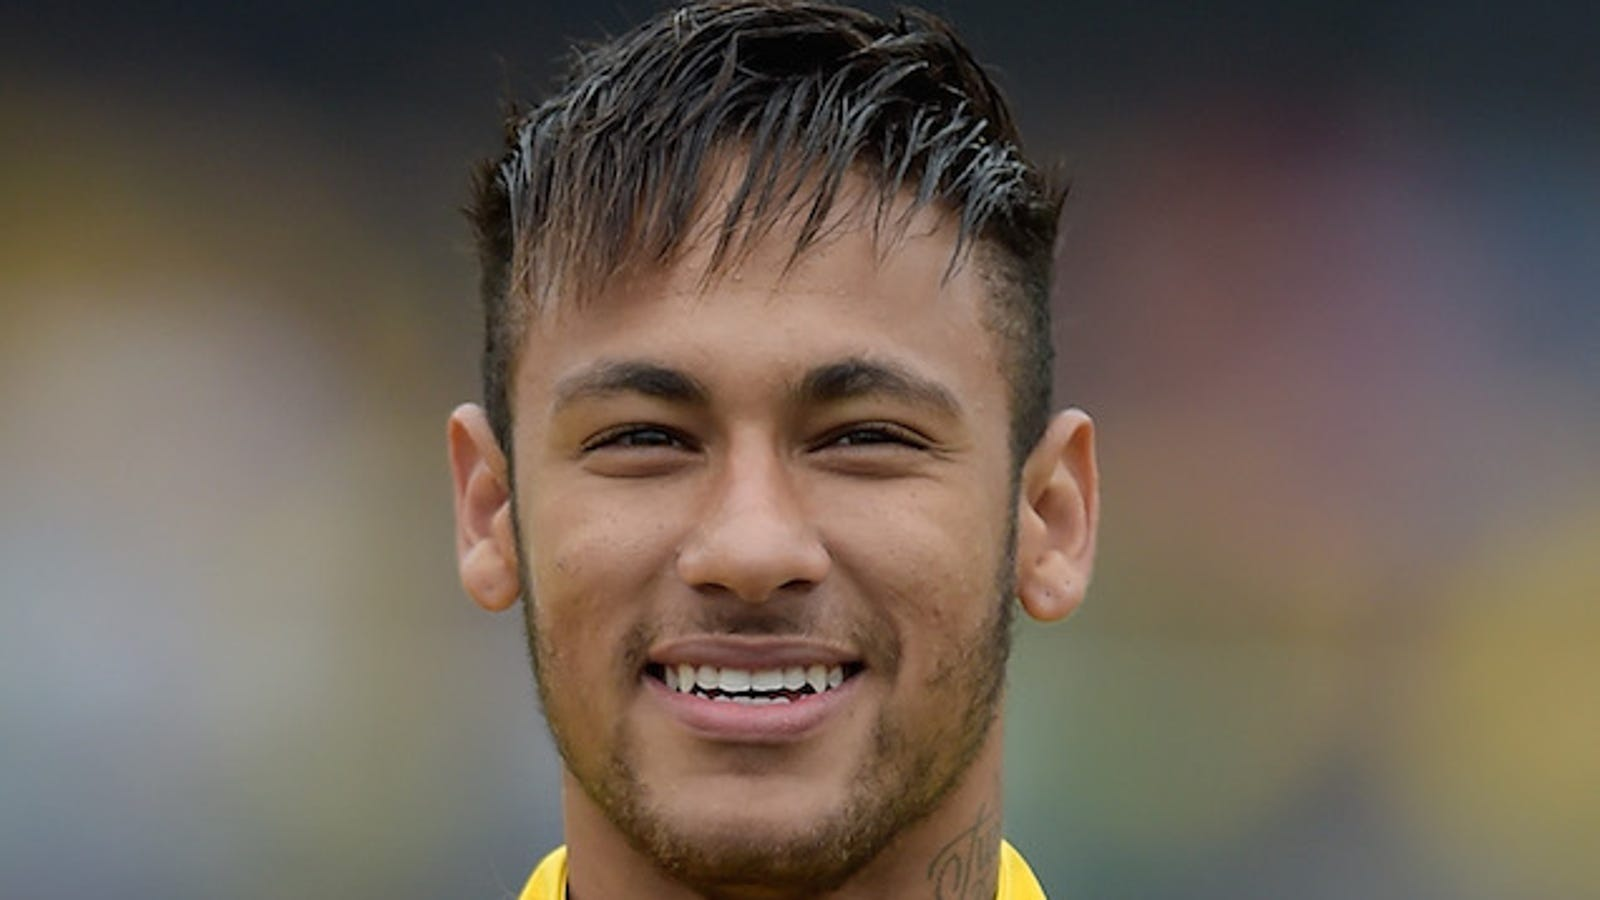 The Career Of Neymar As Told Through His Glorious Hairstyles